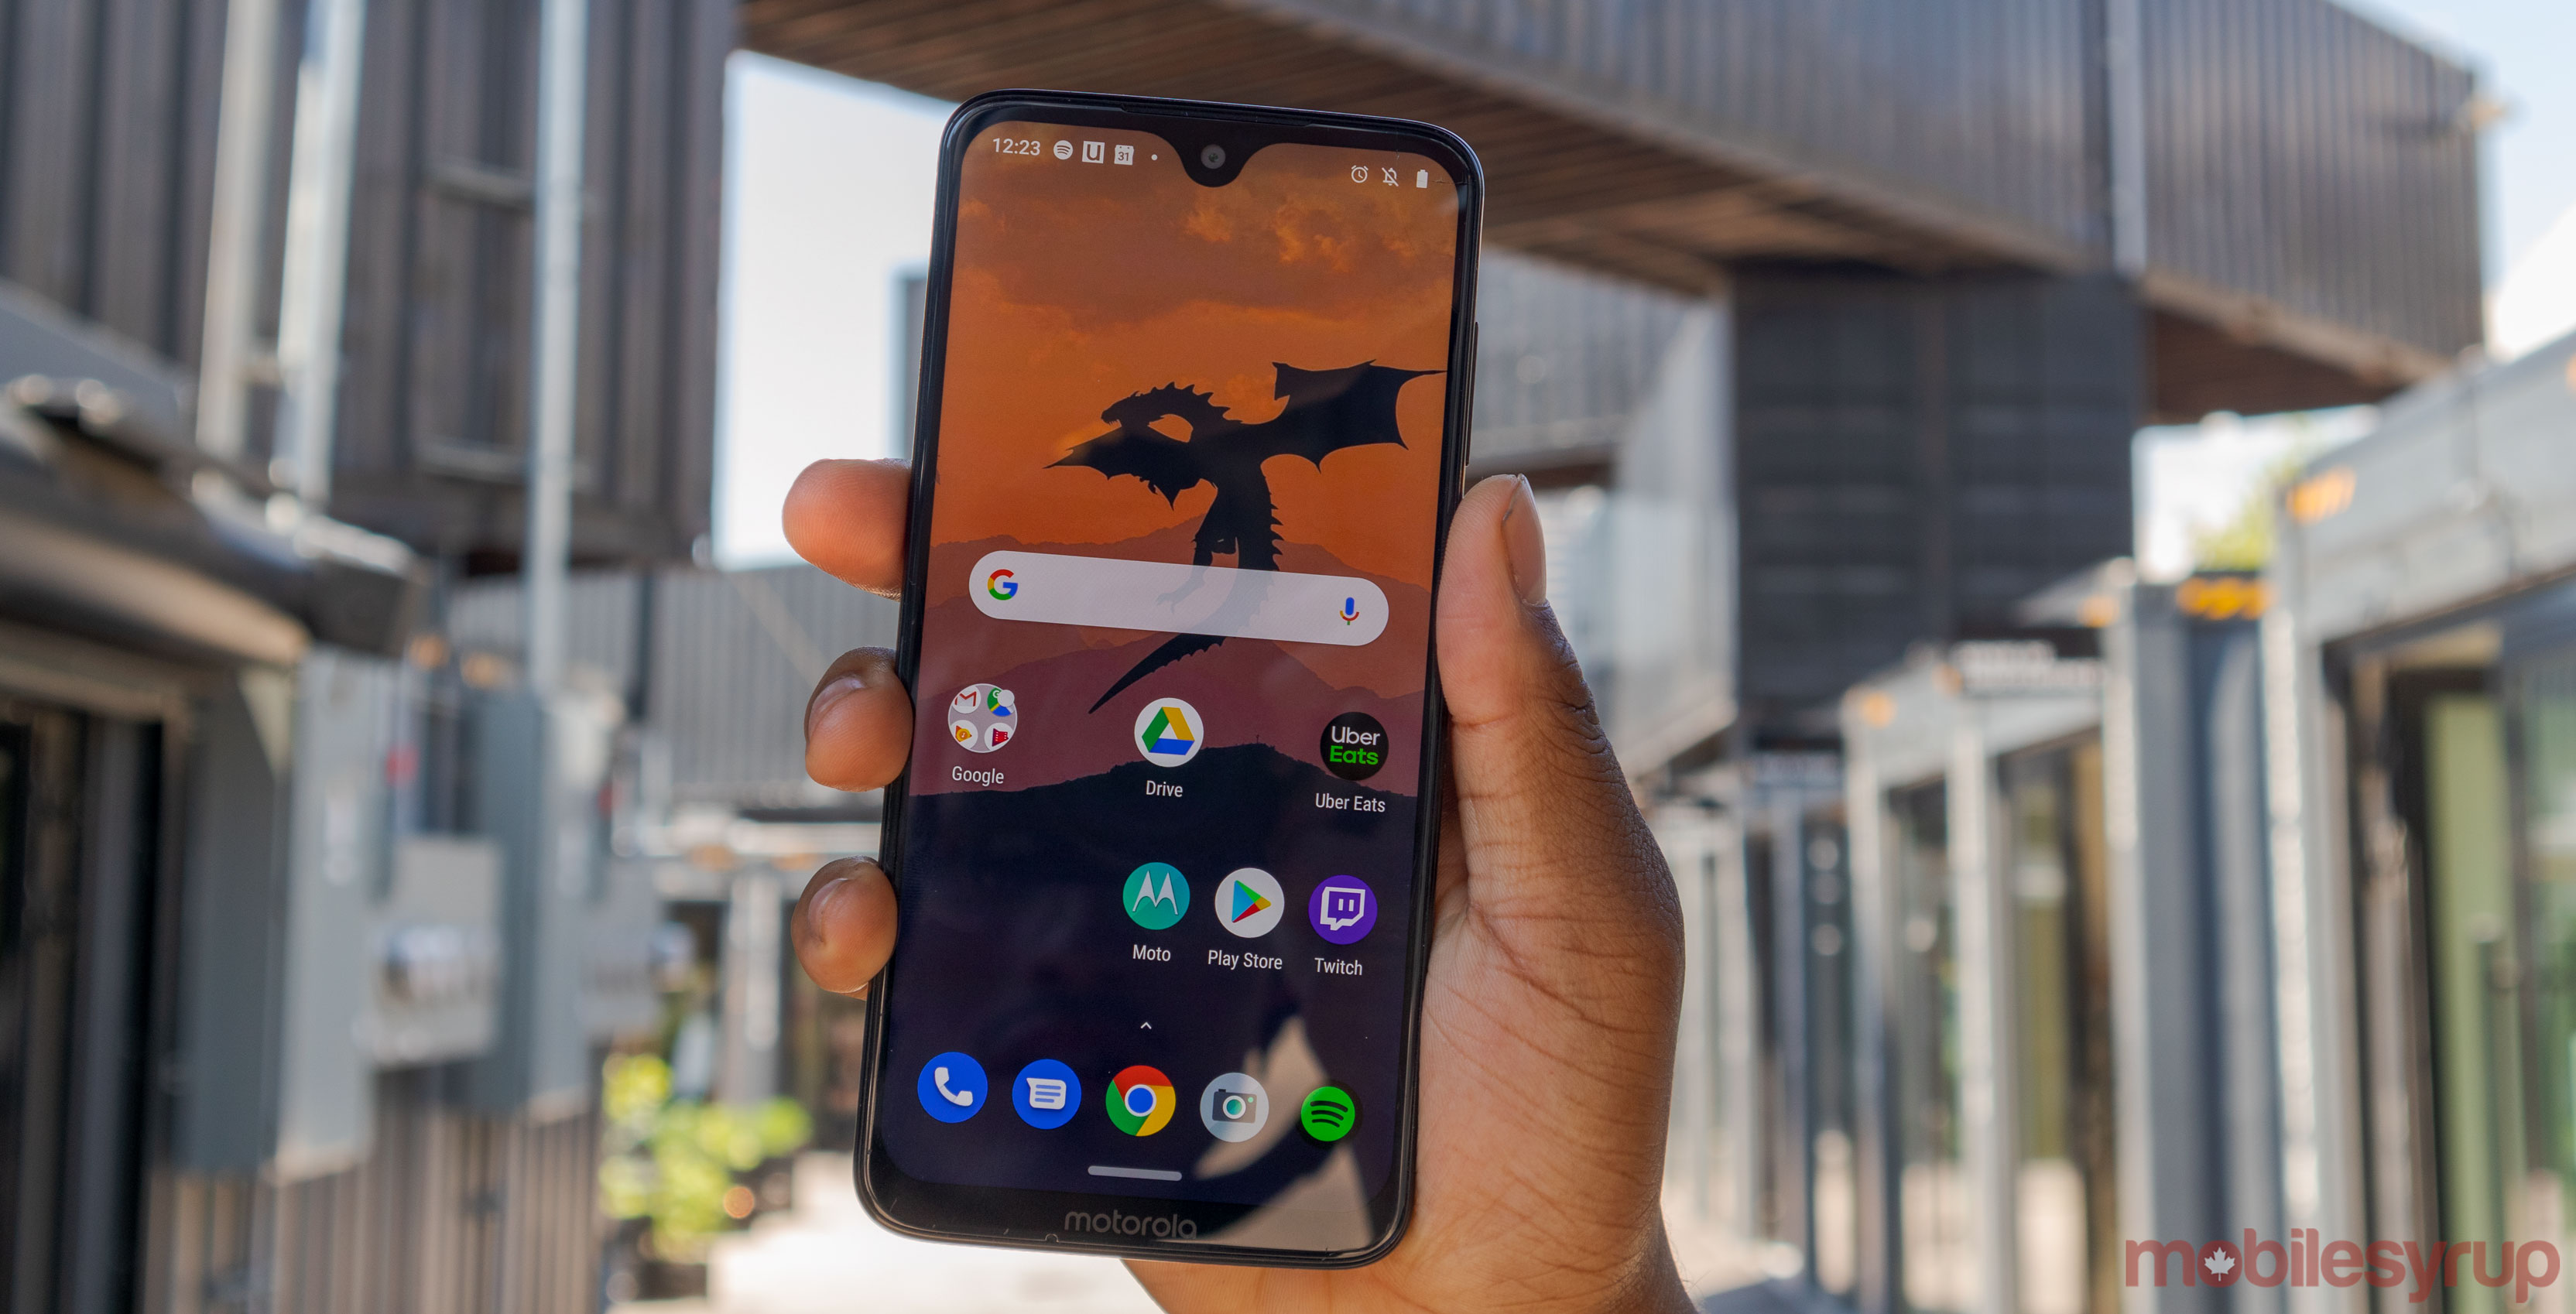 Motorola Moto G7 Review: Affordability meets class